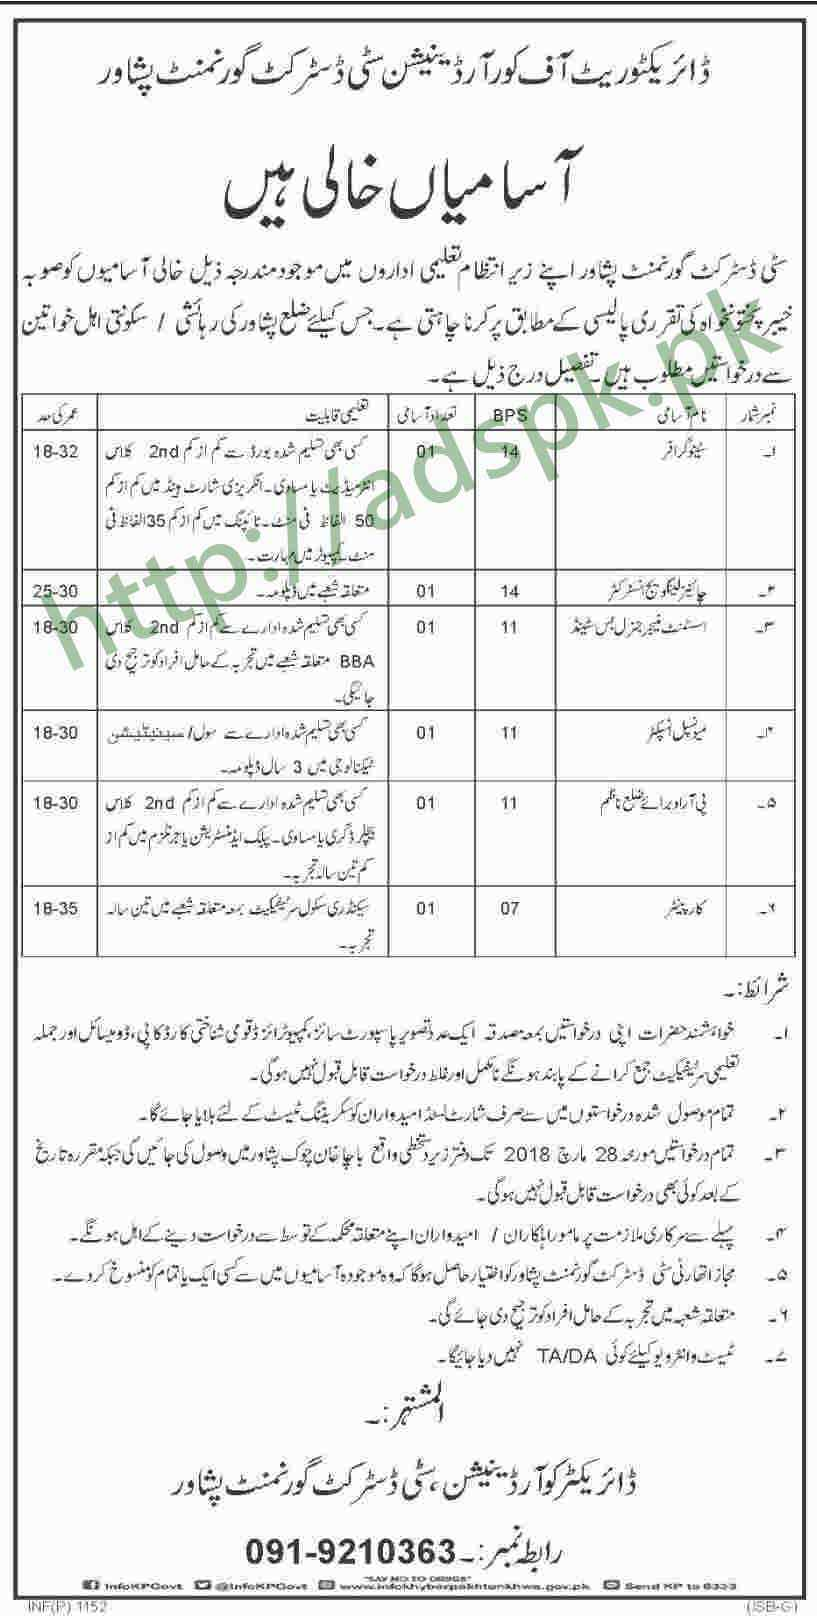 City District Government Peshawar KPK Jobs 2018 Stenographer Chinese Language Instructor Assistant Manager General Bus Stand Municipal Inspector Jobs Application Deadline 28-03-2018 Apply Now